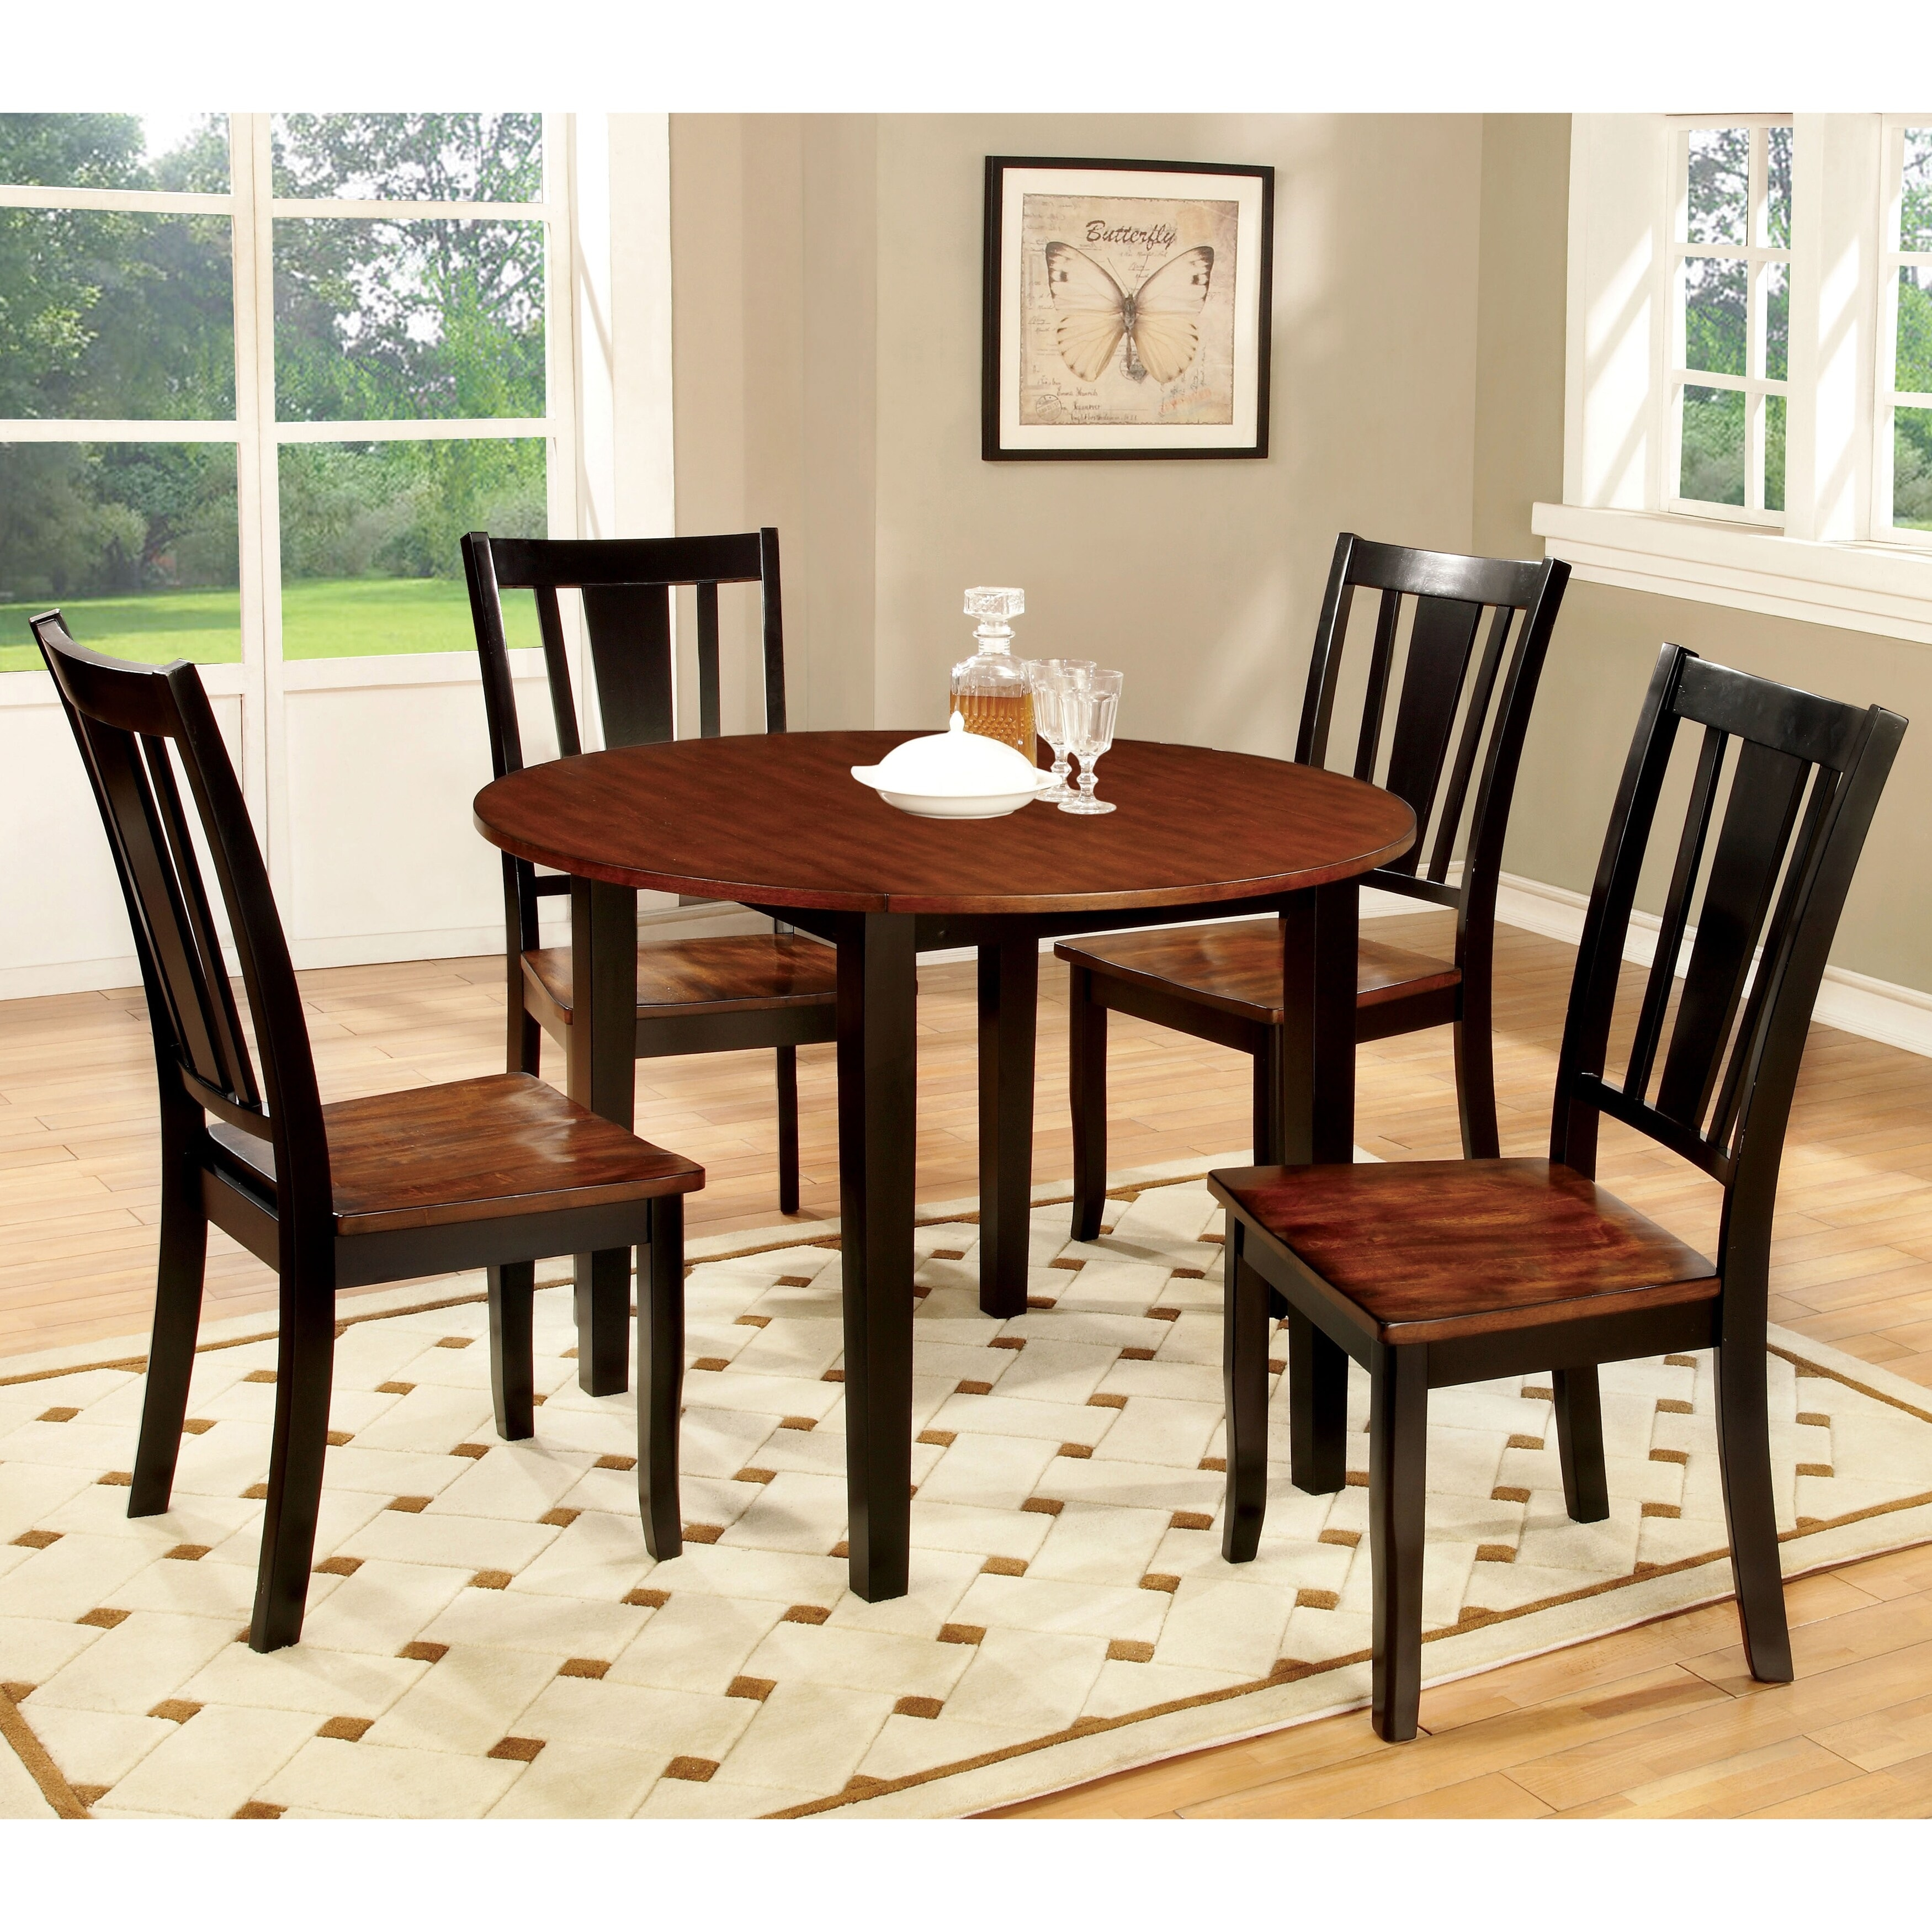 Furniture Of America Betsy Jane 5 Piece Country Style Round Dining Set Overstock 20831139